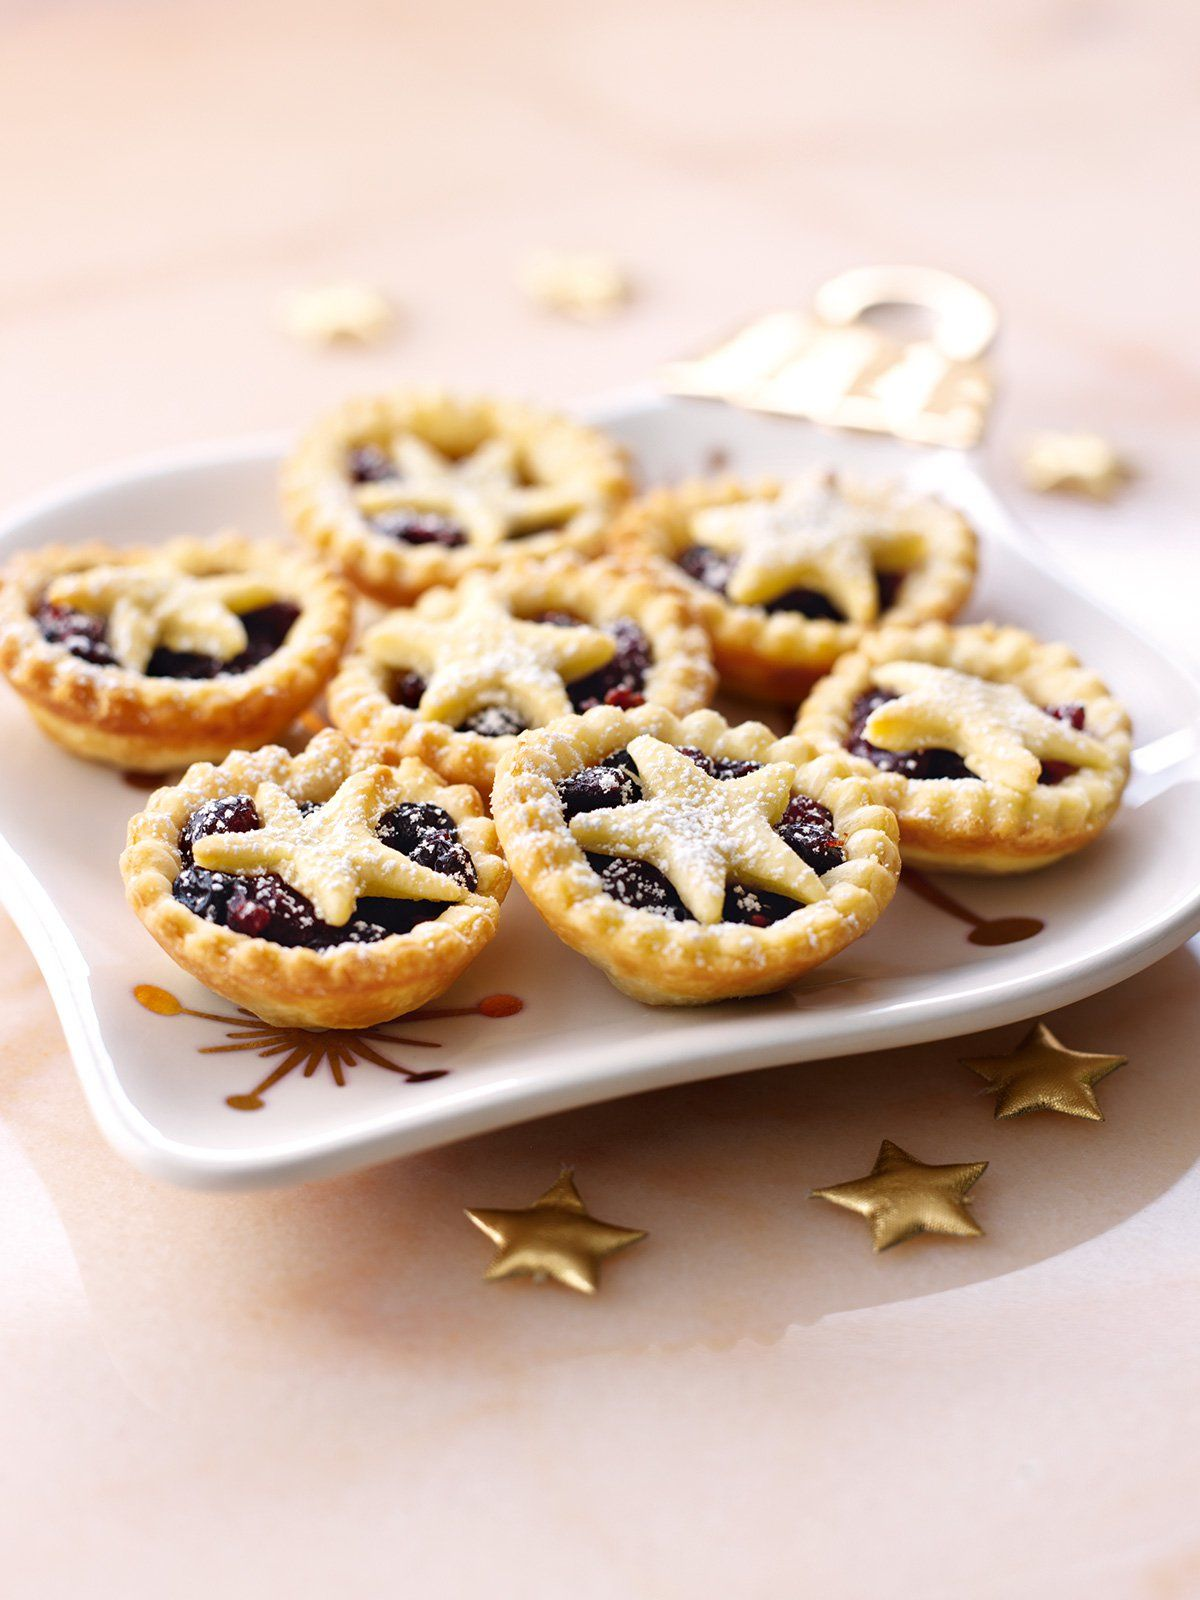 Star Topped Mince Pies Recipe Mince Pies Food Recipes Food